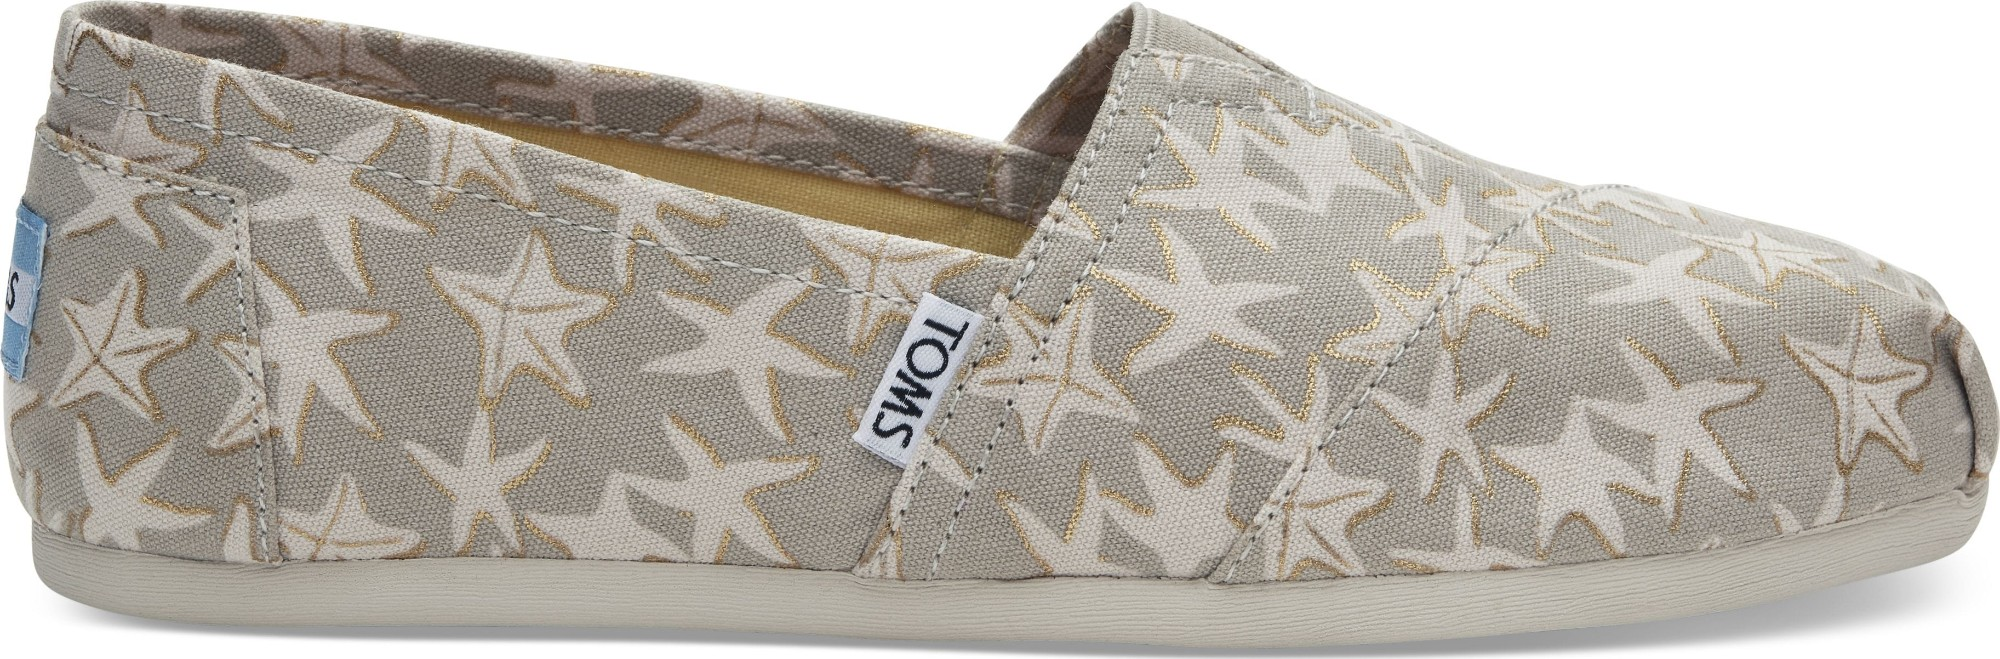 TOMS Foil Starfish Women's Alpargata Oxford Tan/Gold 37,5